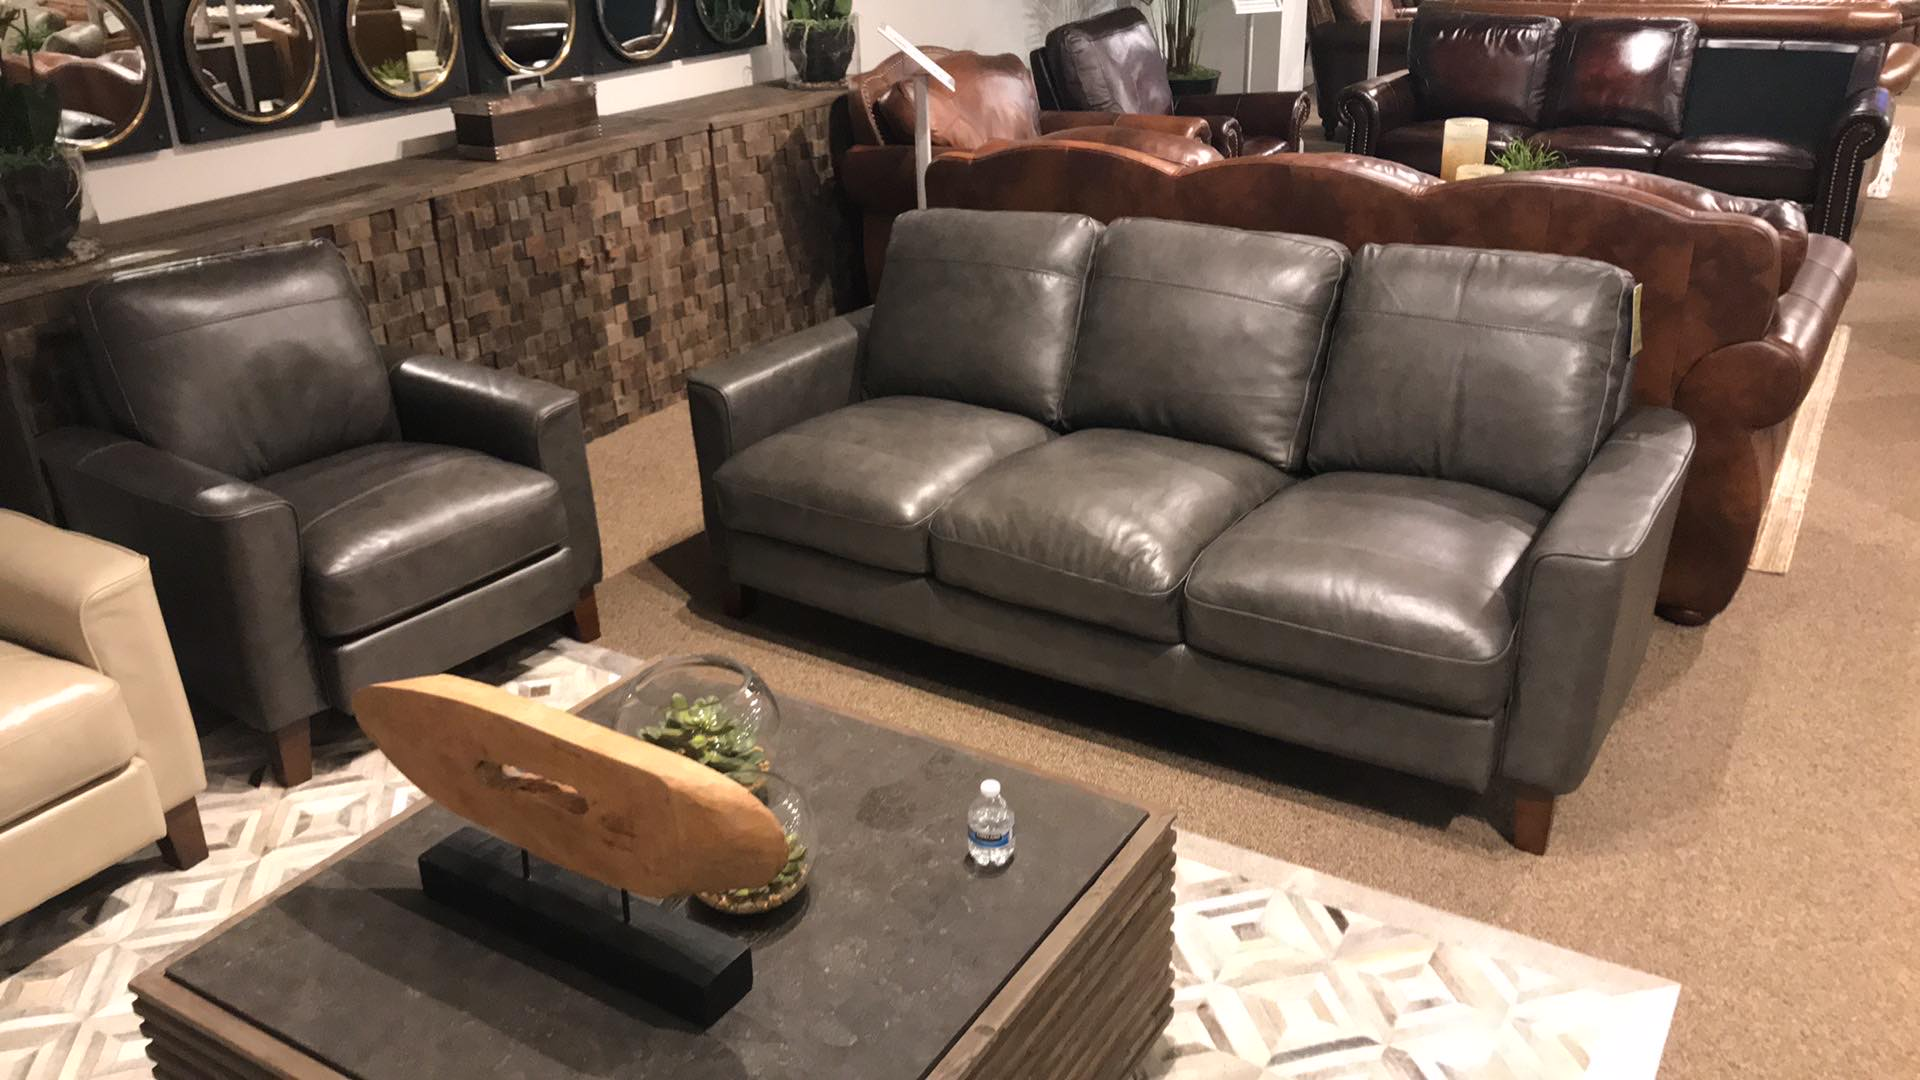 Awesome Weekly Or Monthly Grey Rhino Couch Set Community Furnishings Ocoug Best Dining Table And Chair Ideas Images Ocougorg